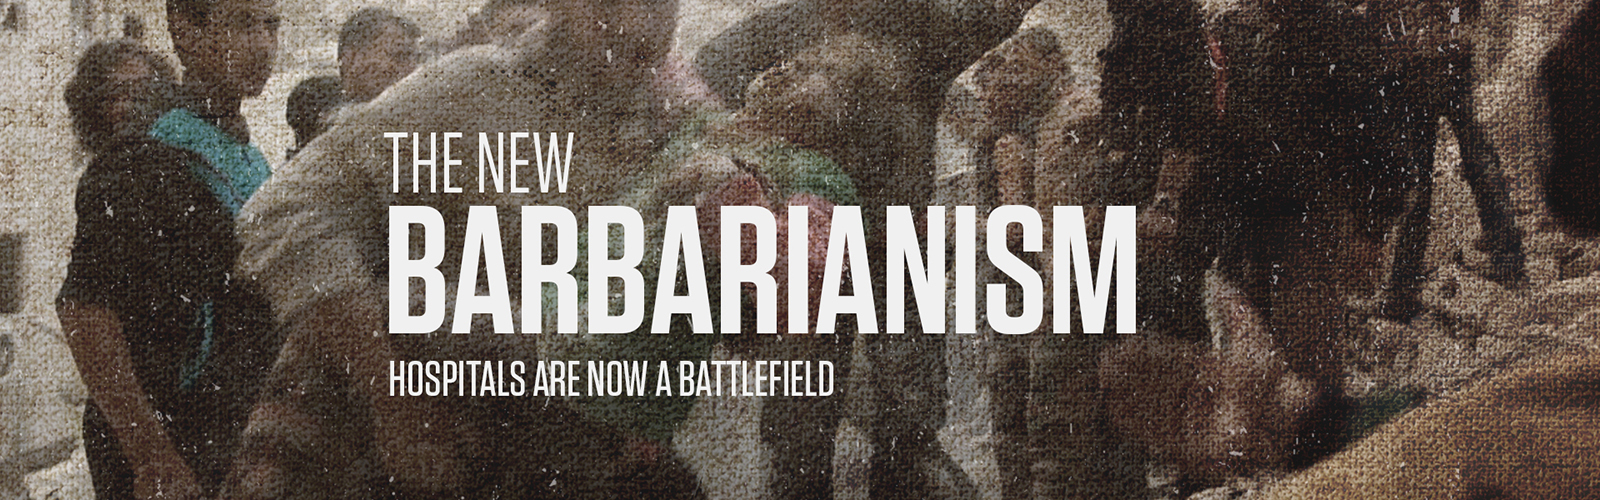 The New Barbarianism